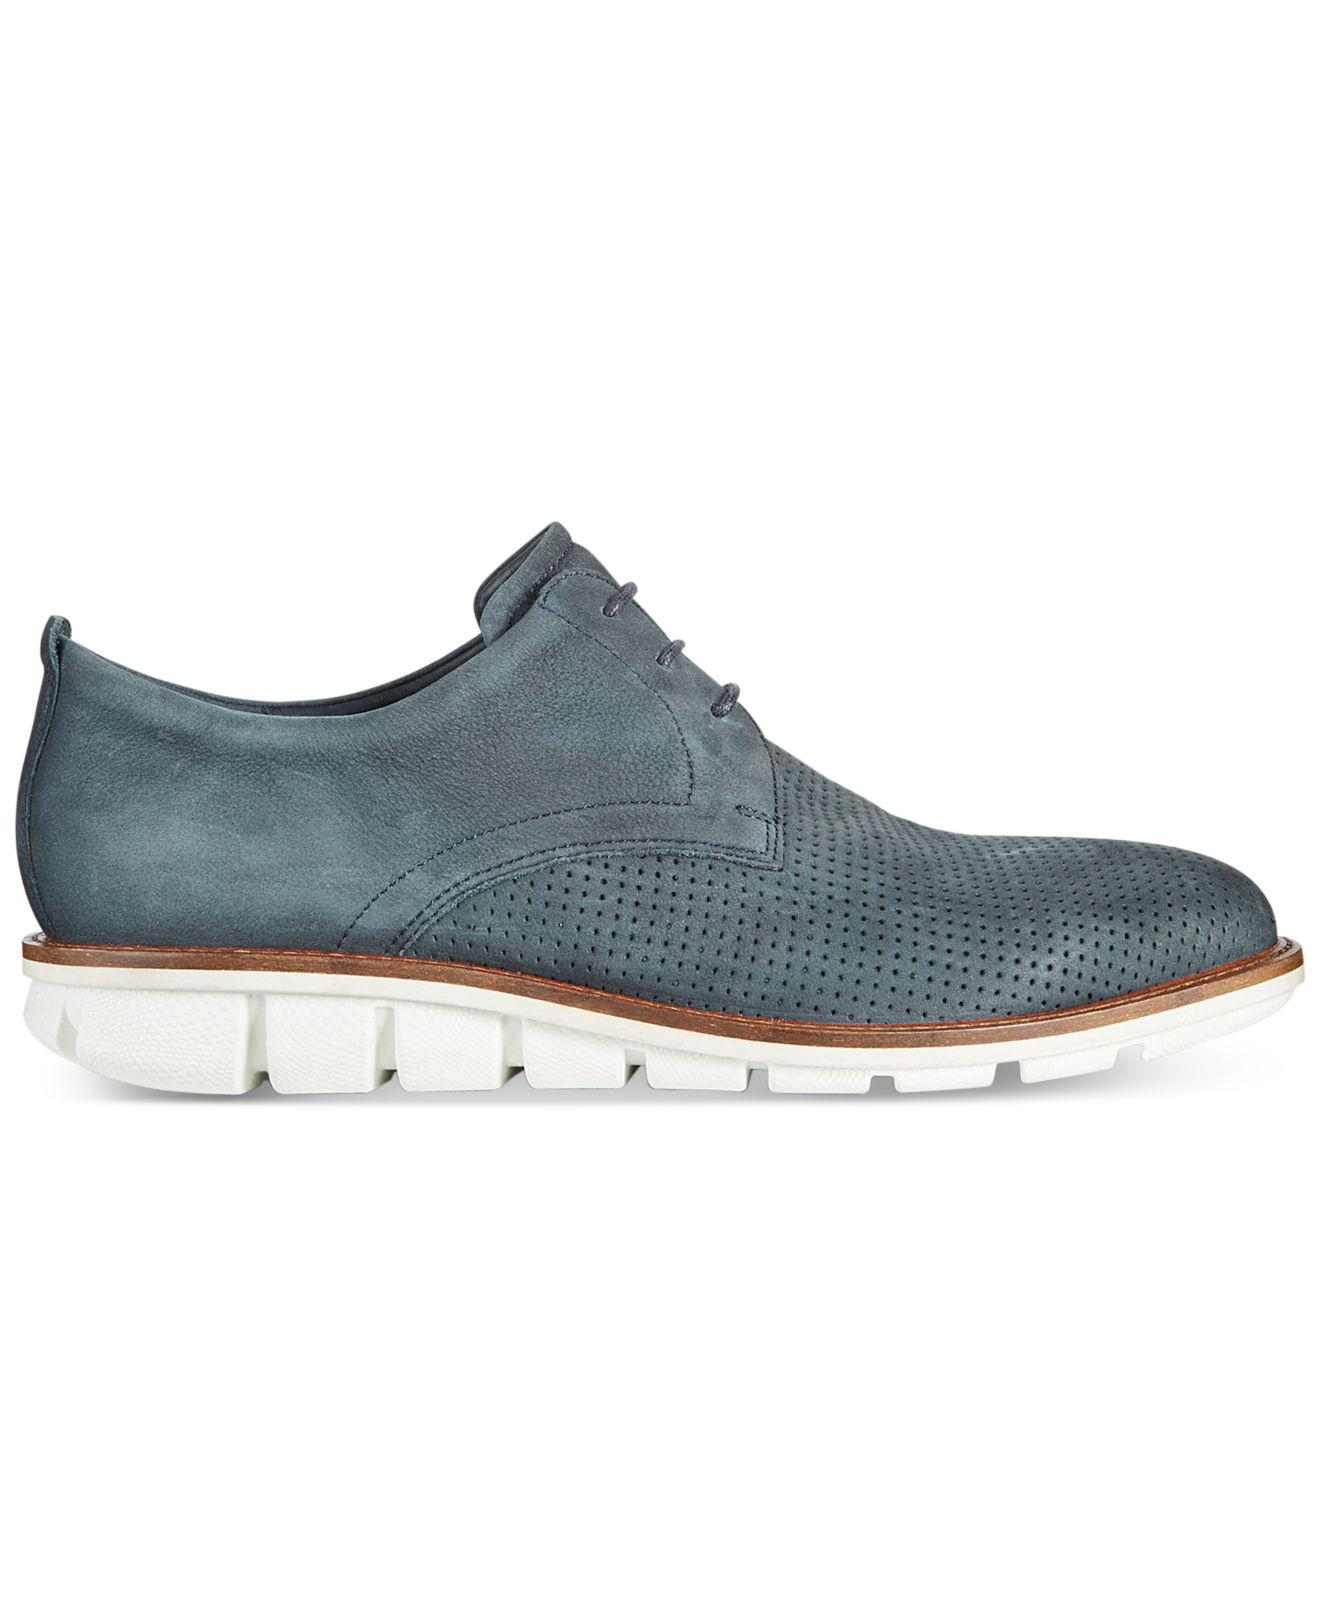 ECCO Jeremy Bukhara Perforated Derby fmBQz2KO